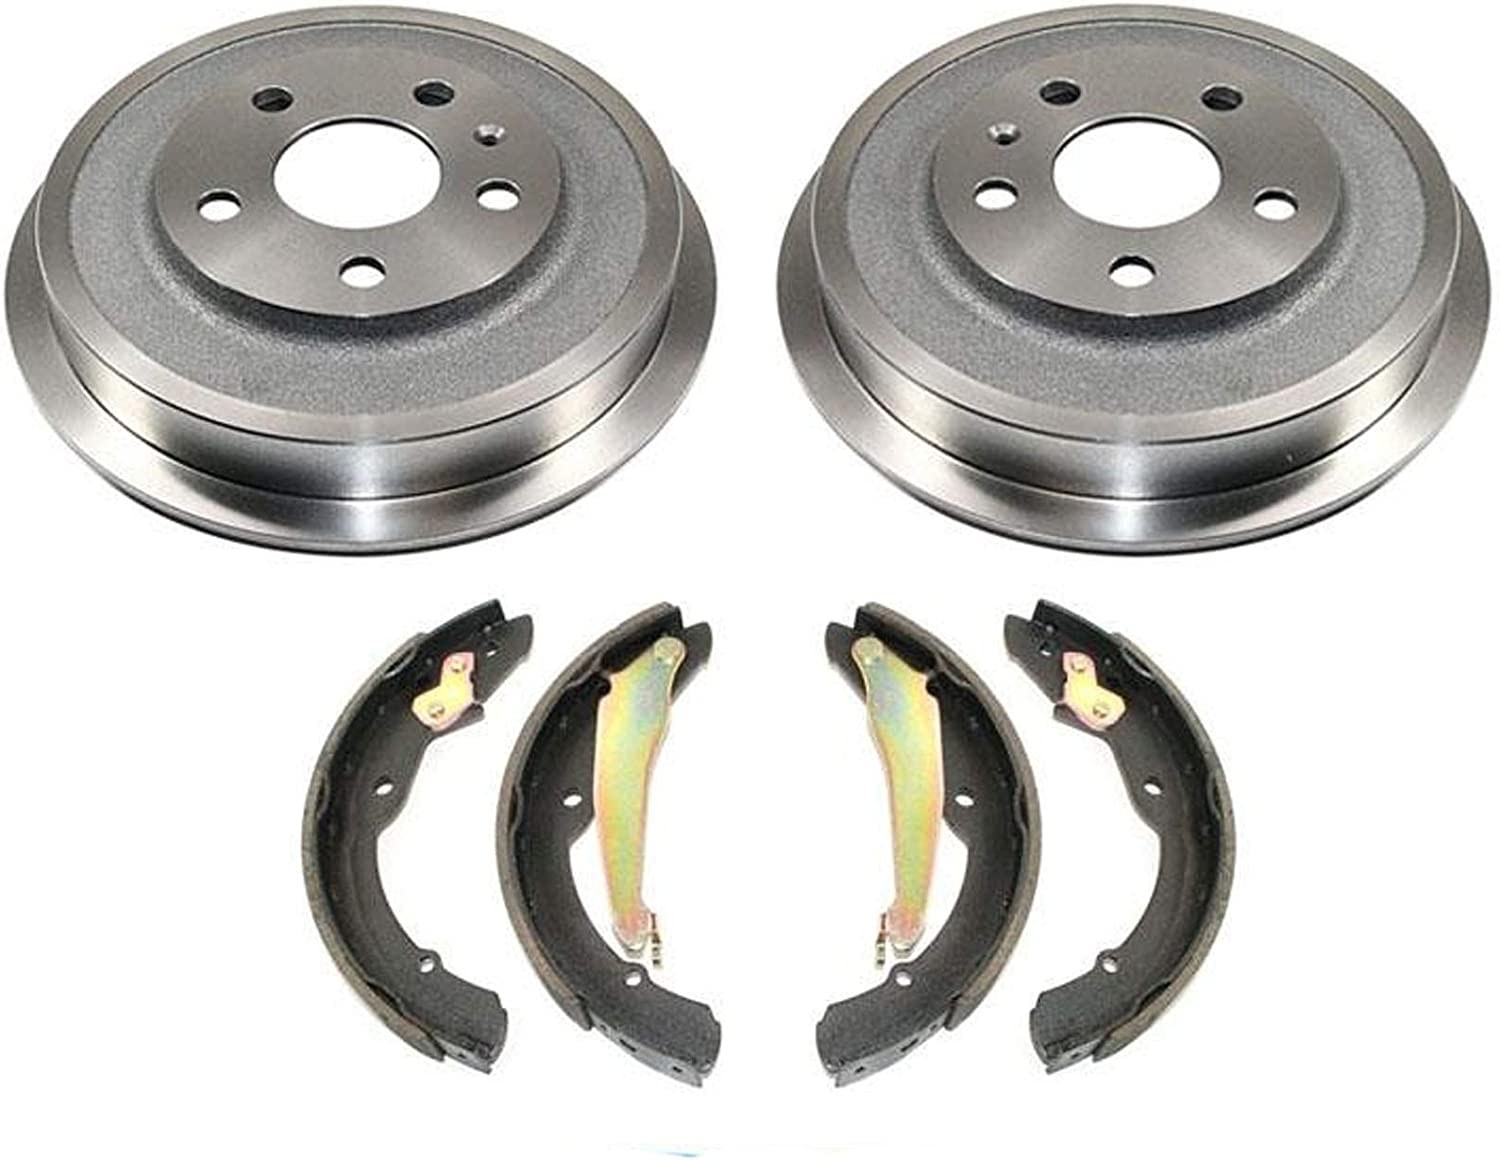 High order 2 Brake Drums Shoes 11-12 for Jetta Re Bombing free shipping 2.5L 2.0L With VW